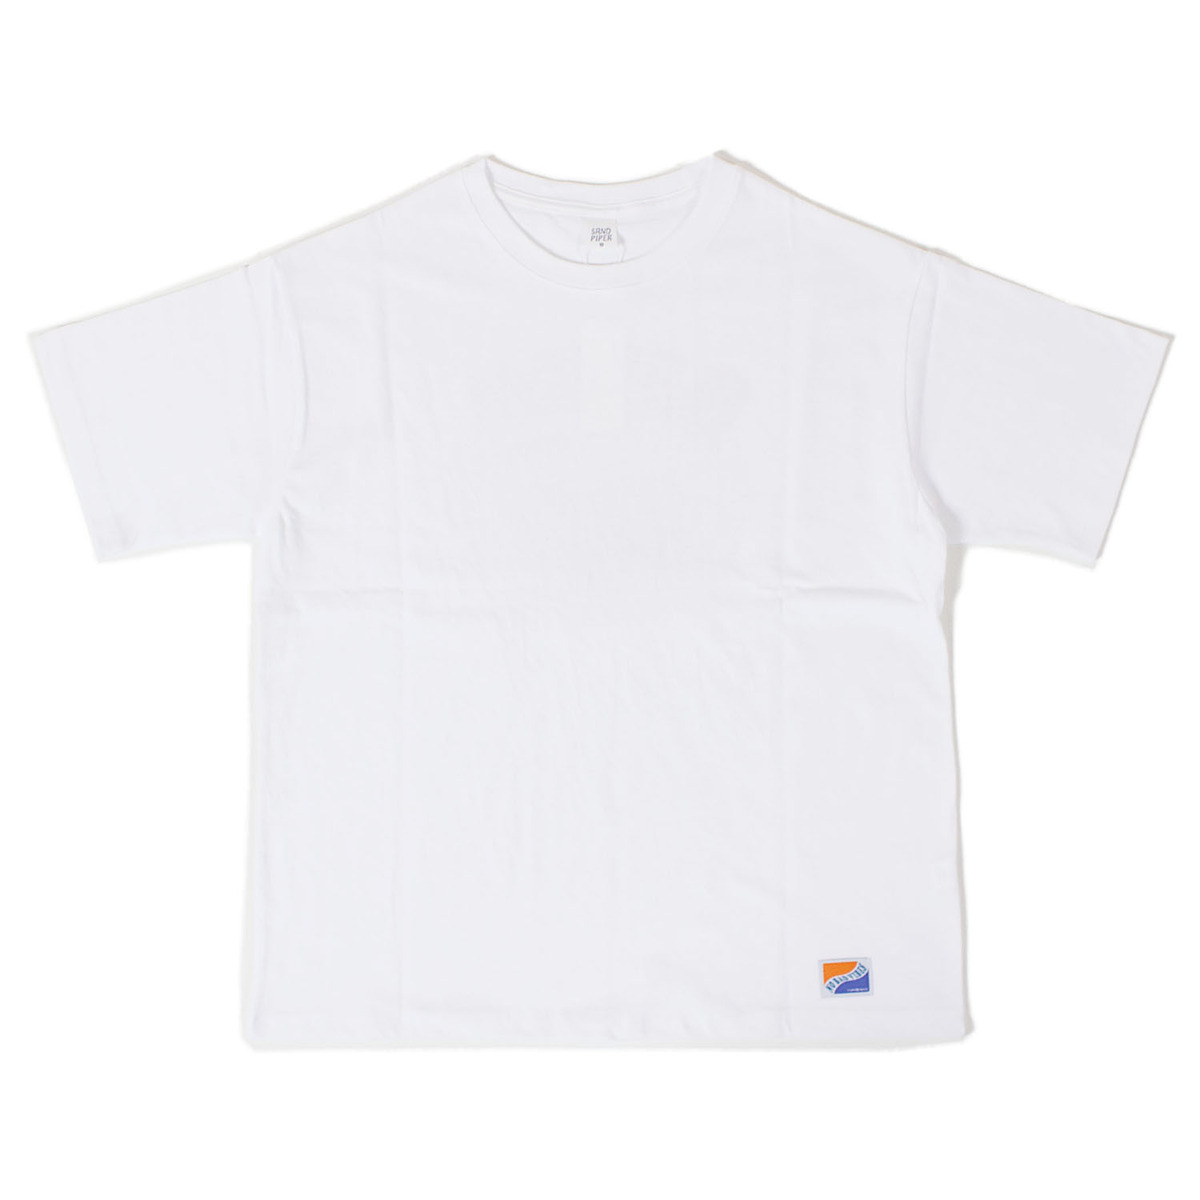 Retro T-shirts (White)